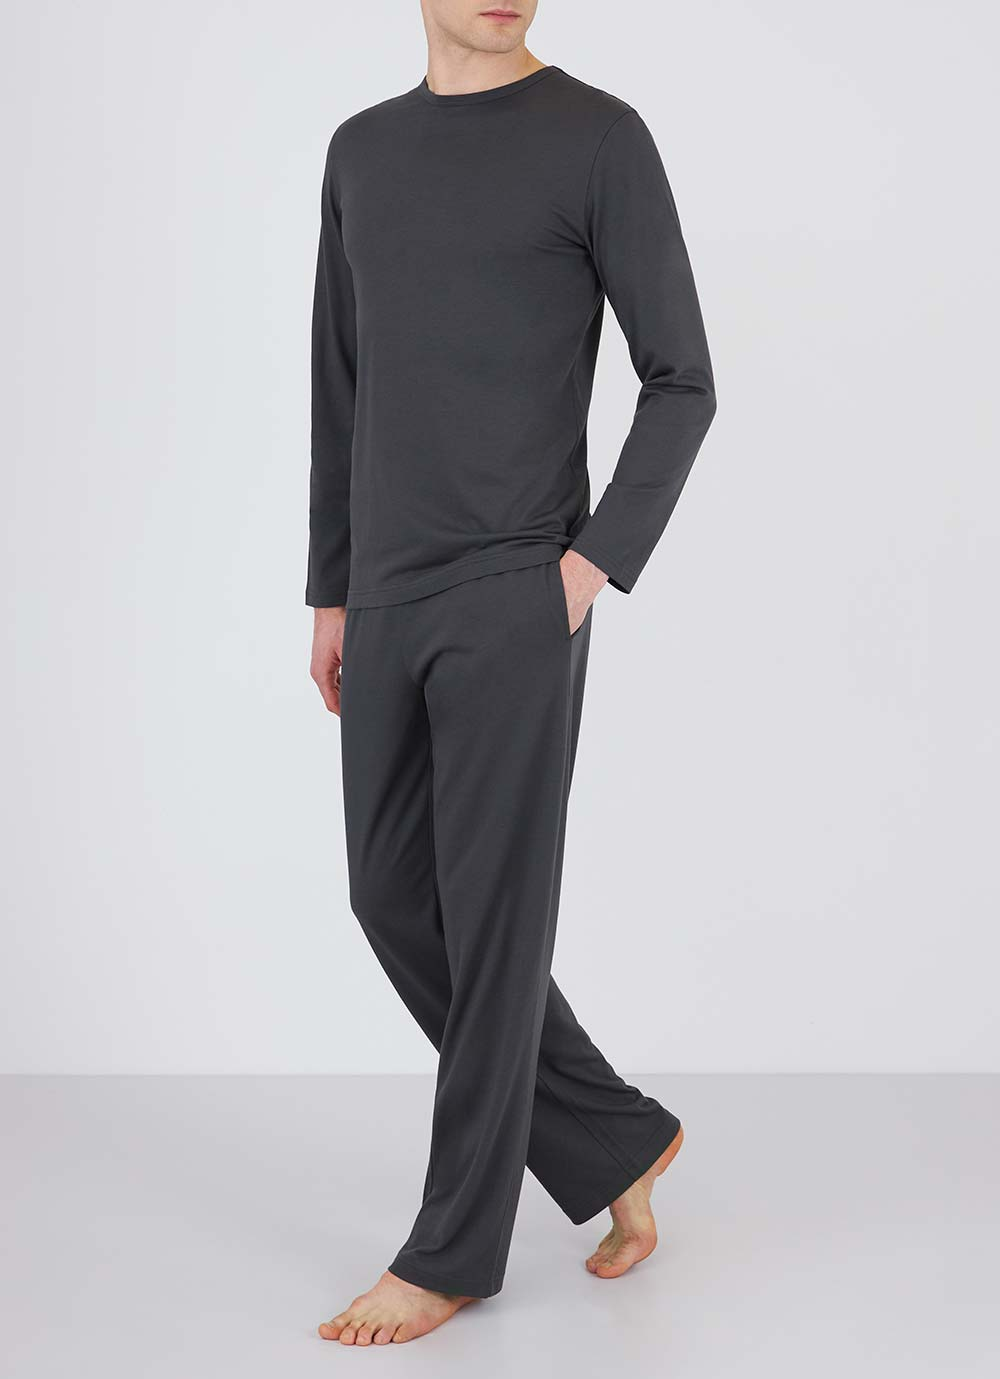 Sunspel-Lounge-Pant-Charcoal